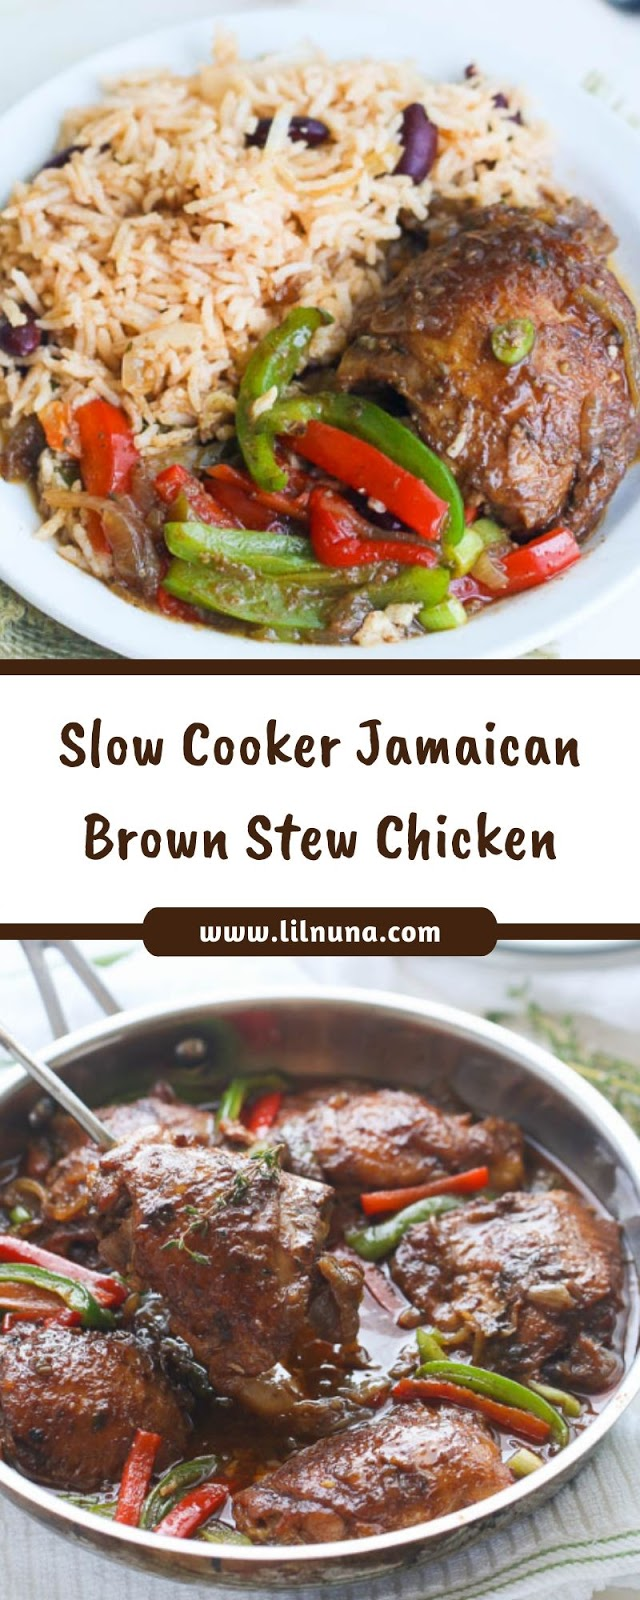 Slow Cooker Jamaican Brown Stew Chicken